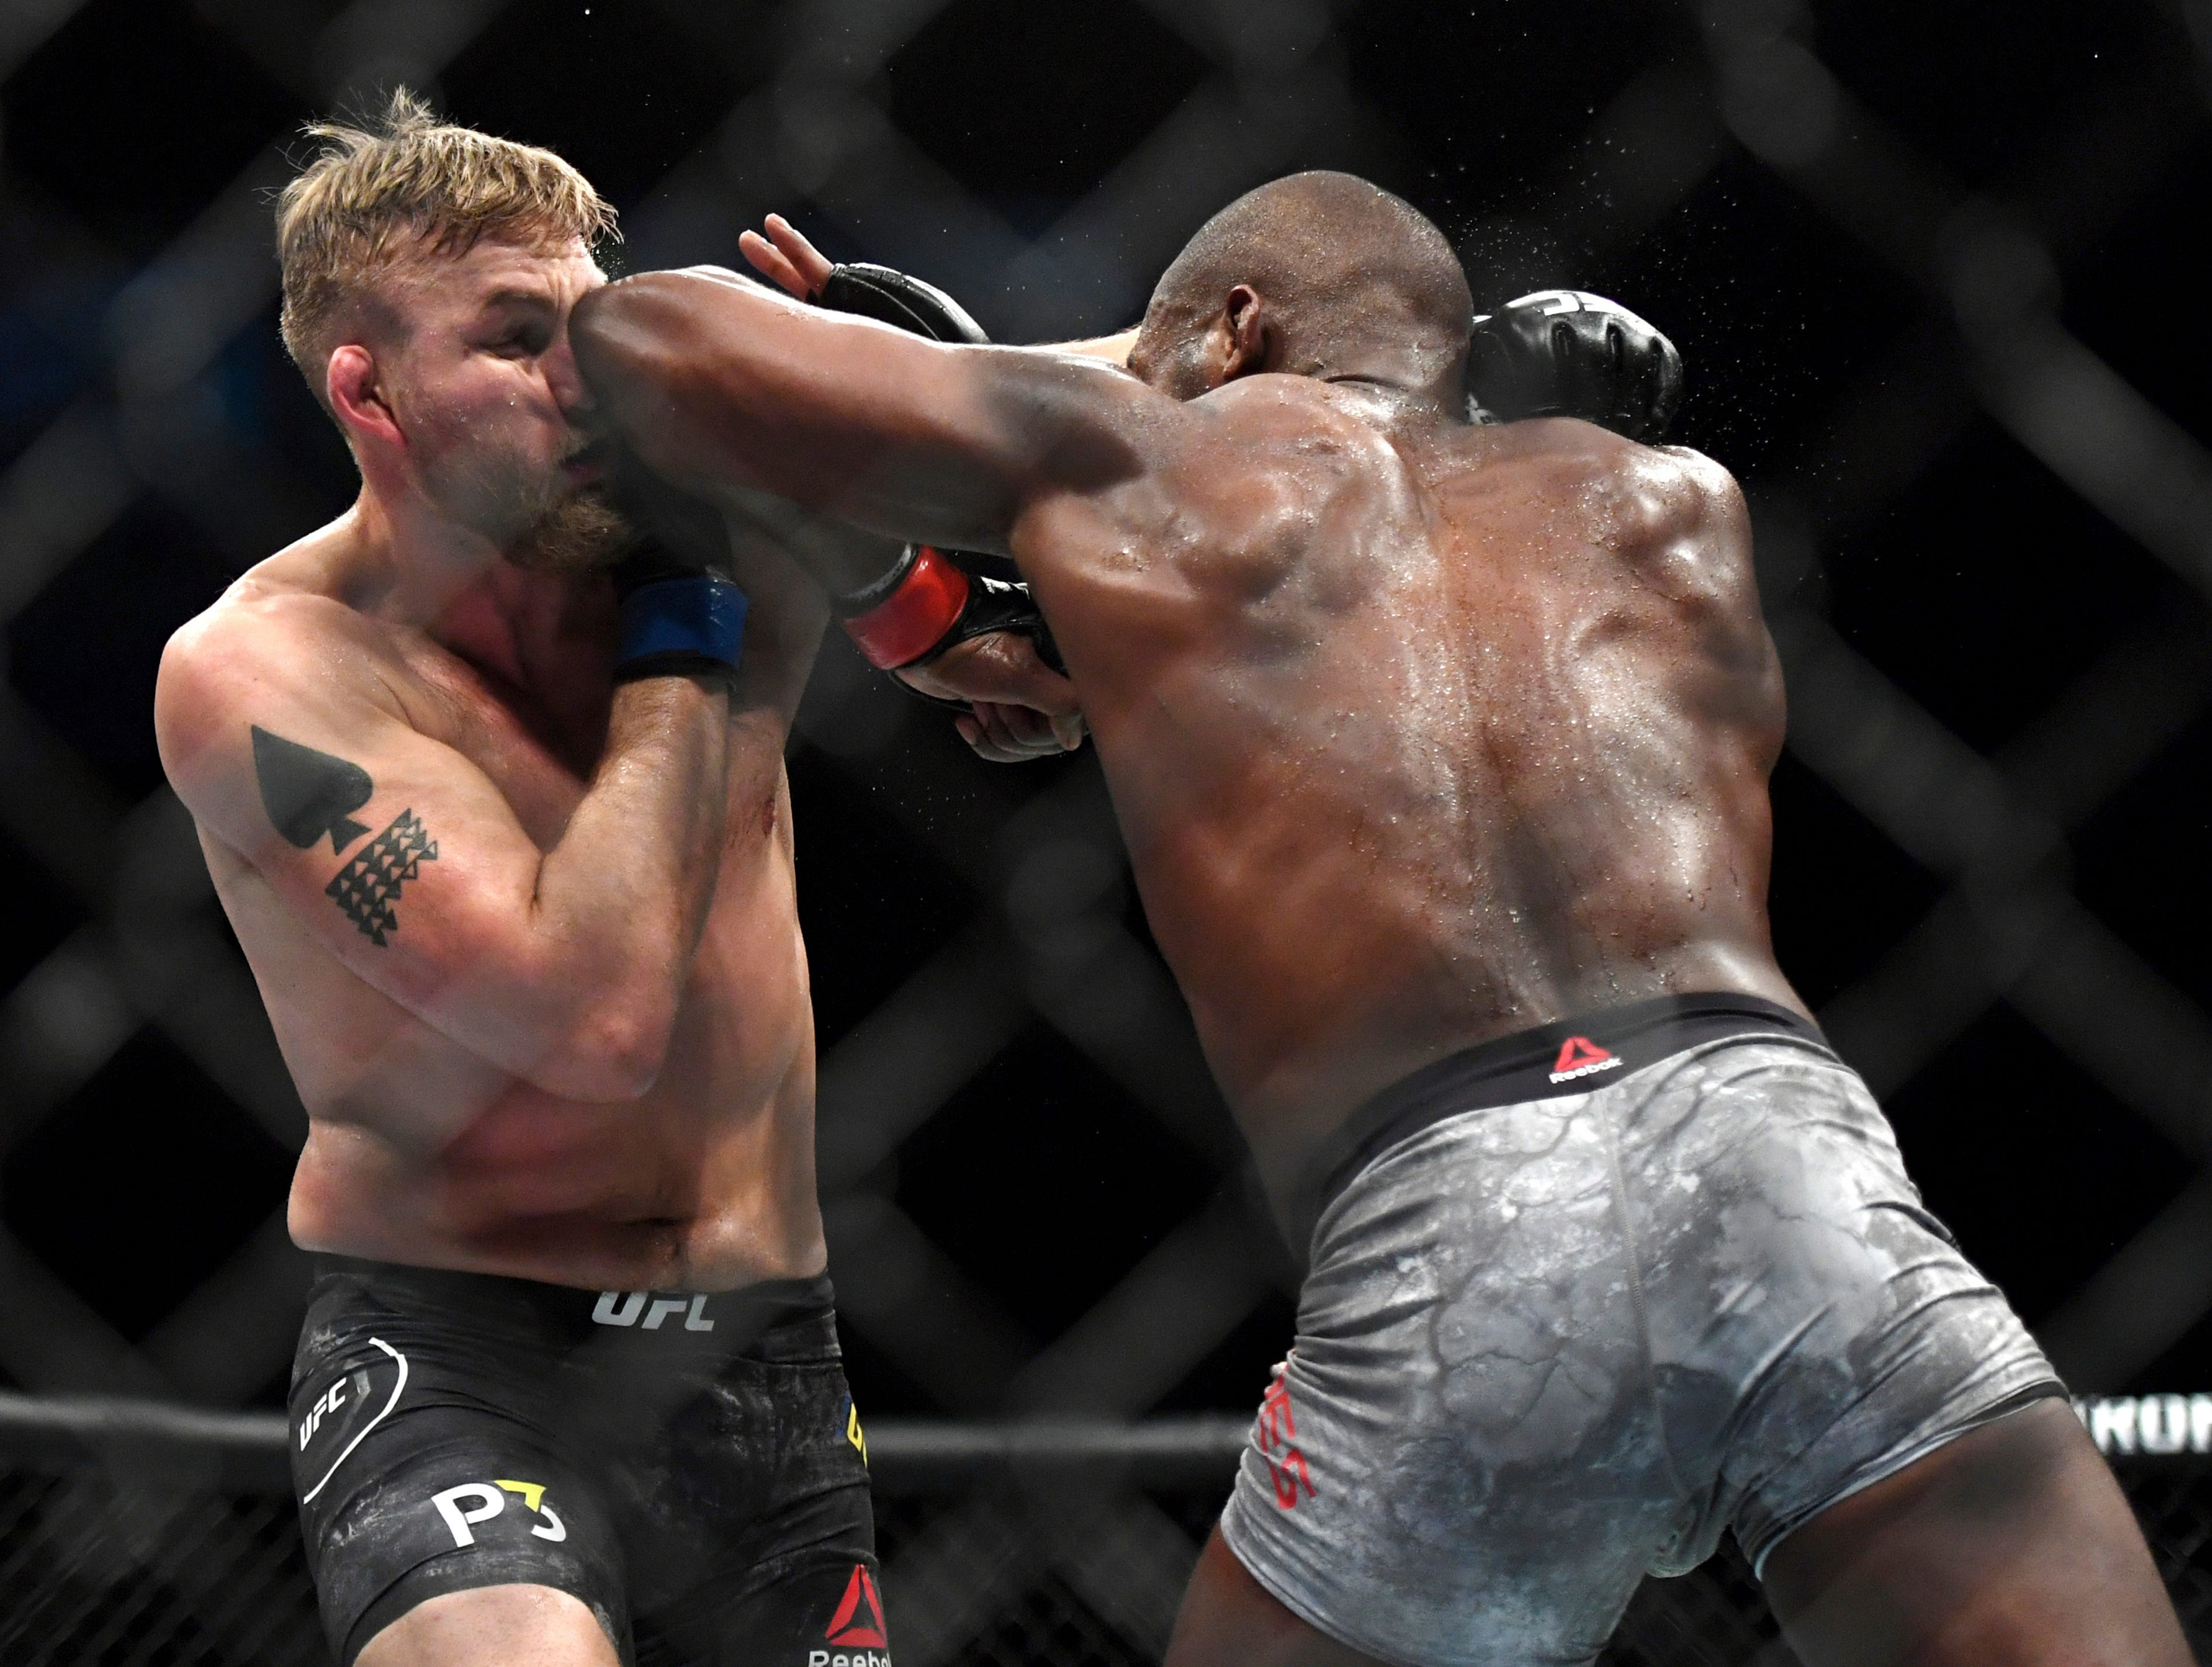 Jon Jones, right, lands an elbow to Alexander Gustafsson during the UFC men's light heavyweight mixed martial arts bout at UFC 232, Saturday, Dec. 29, 2018, in Inglewood, Calif. (AP Photo/Kyusung Gong)